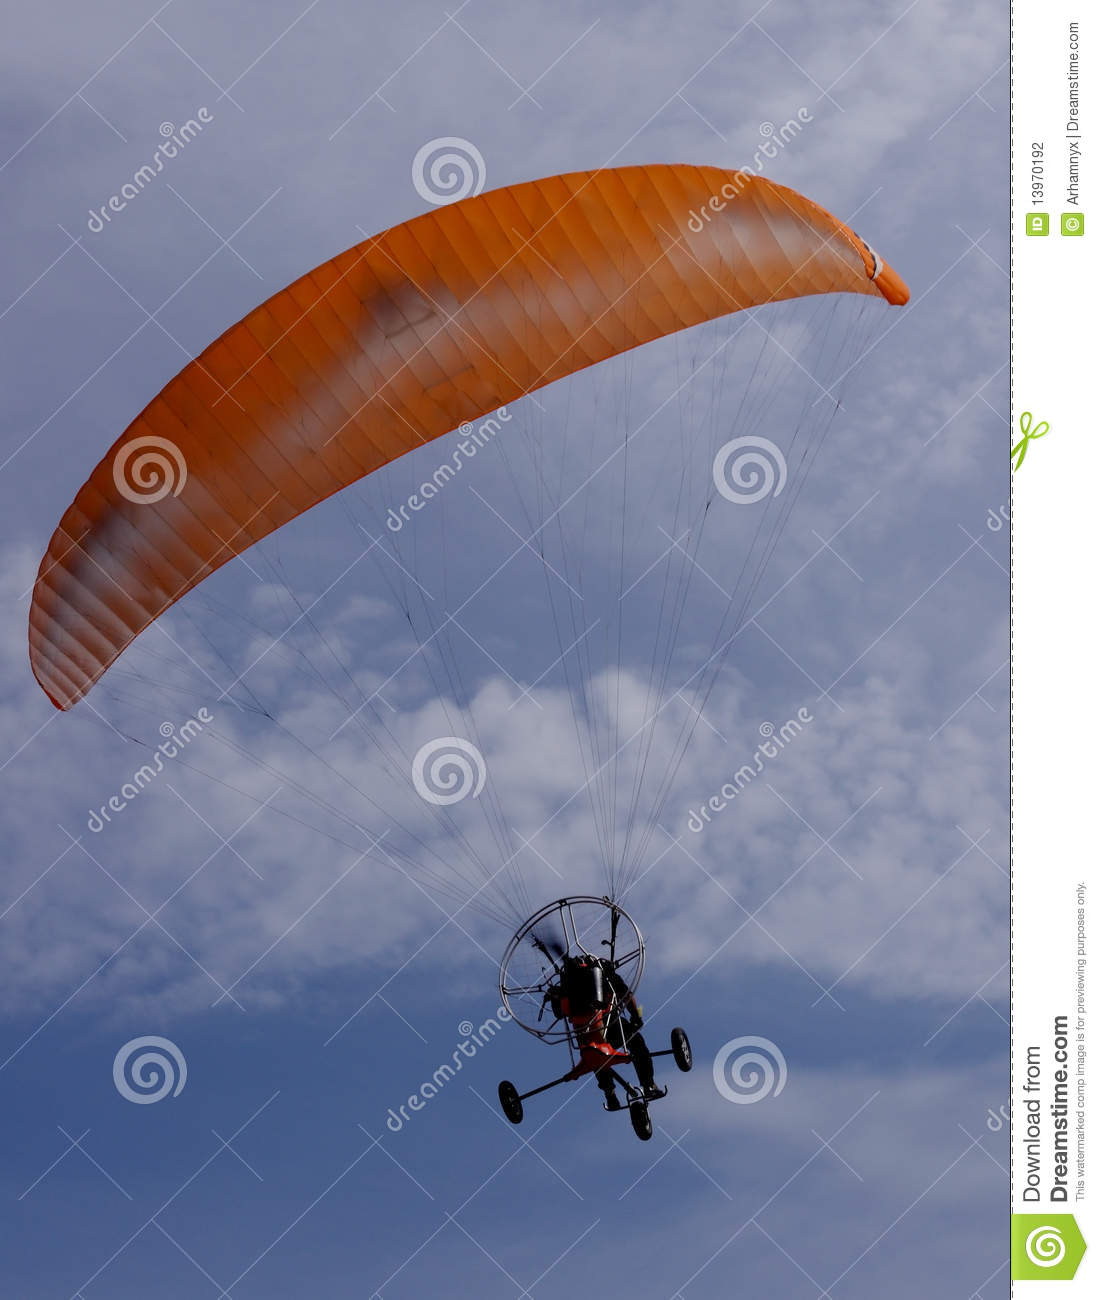 Parachute motor glider stock photography image 13970192 for Max motor dreams cost